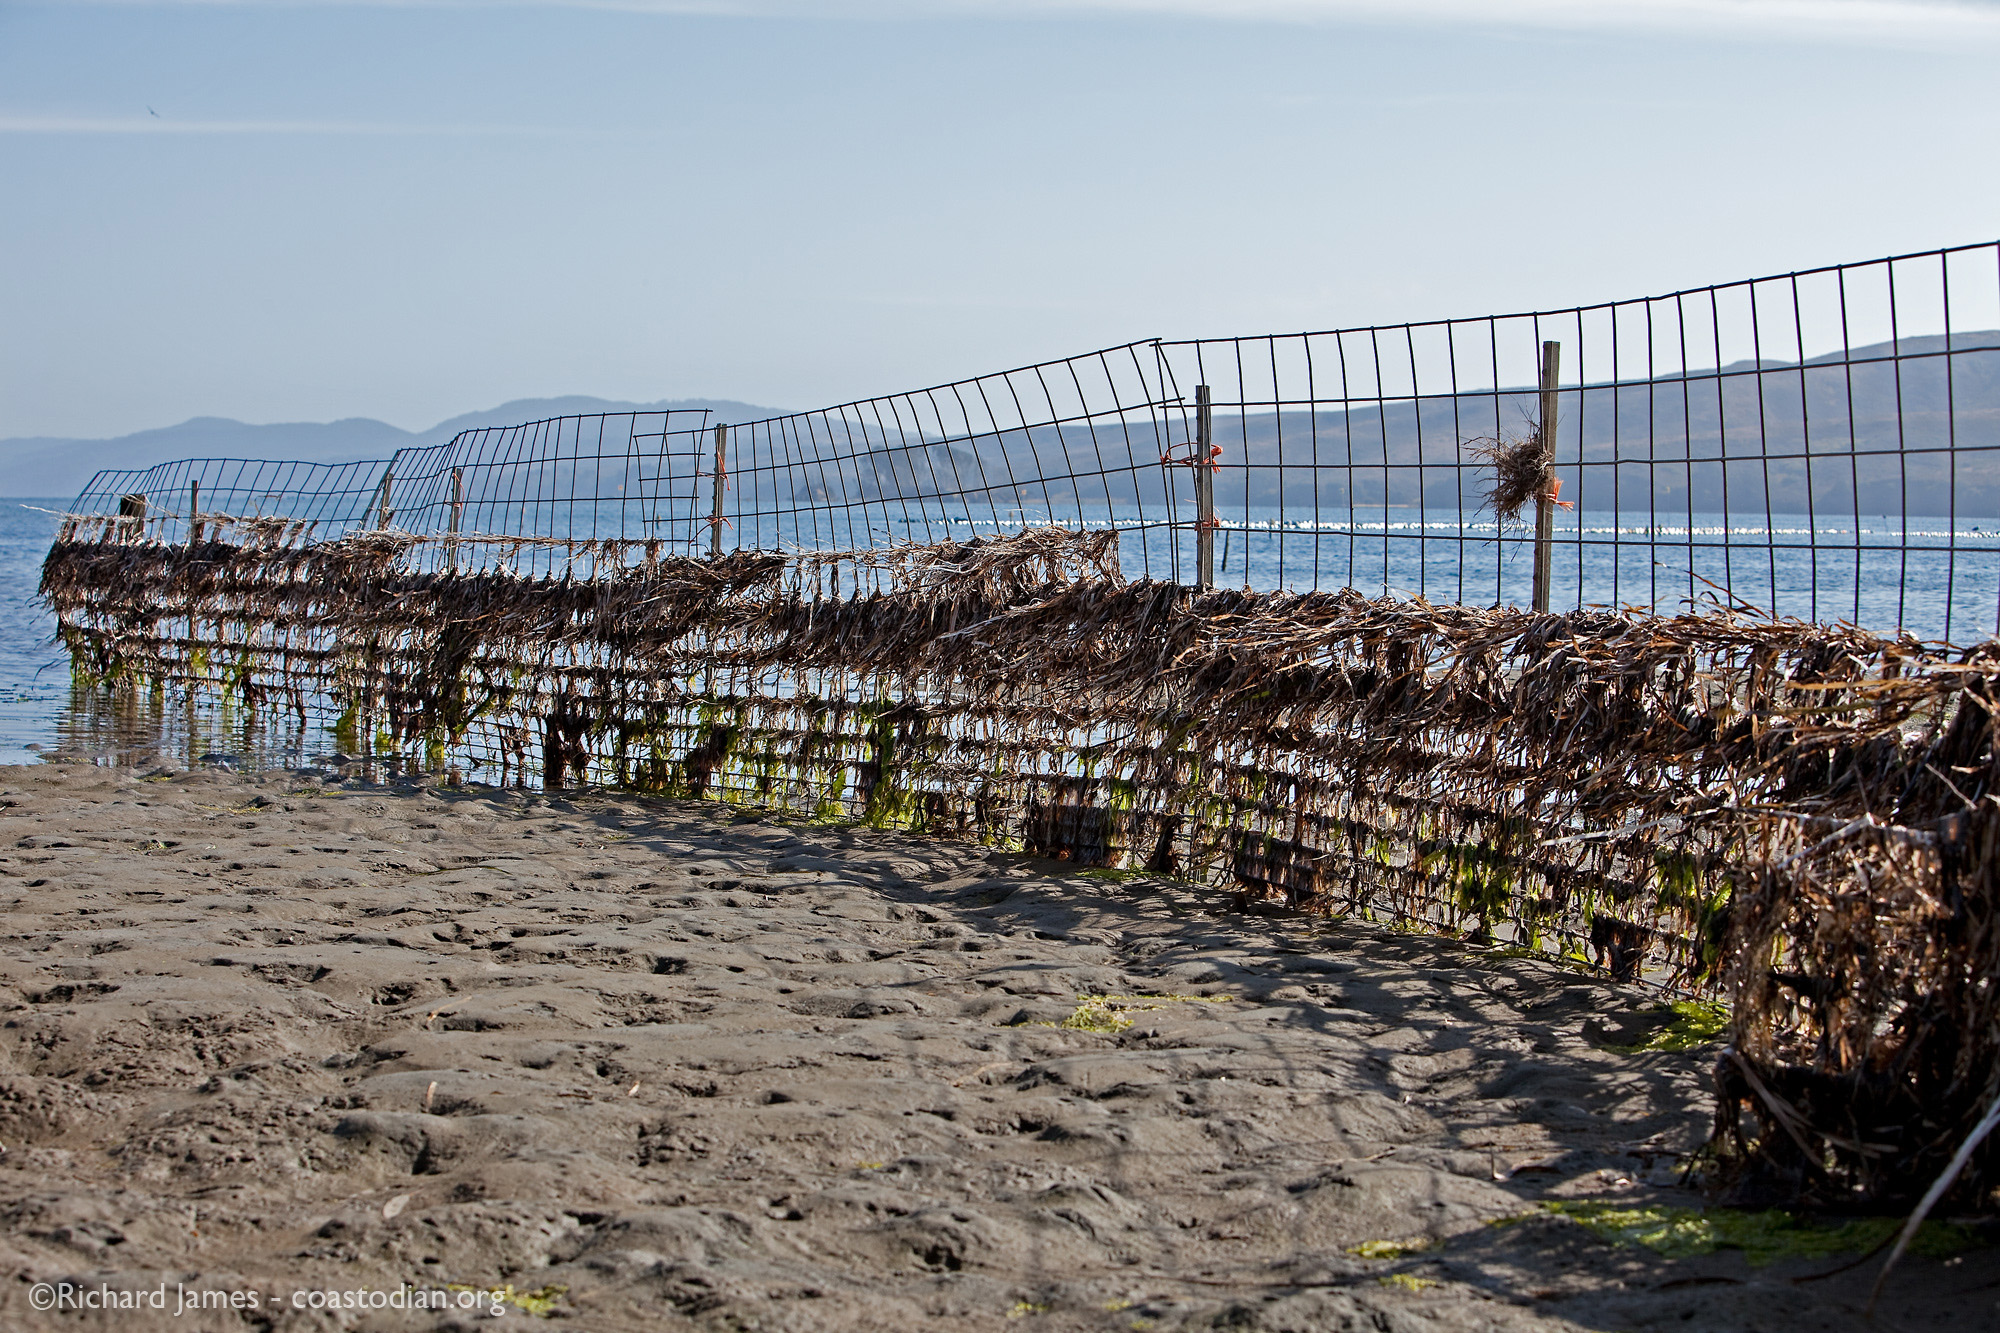 Eel grass trapped by cow fence, Tomales Bay